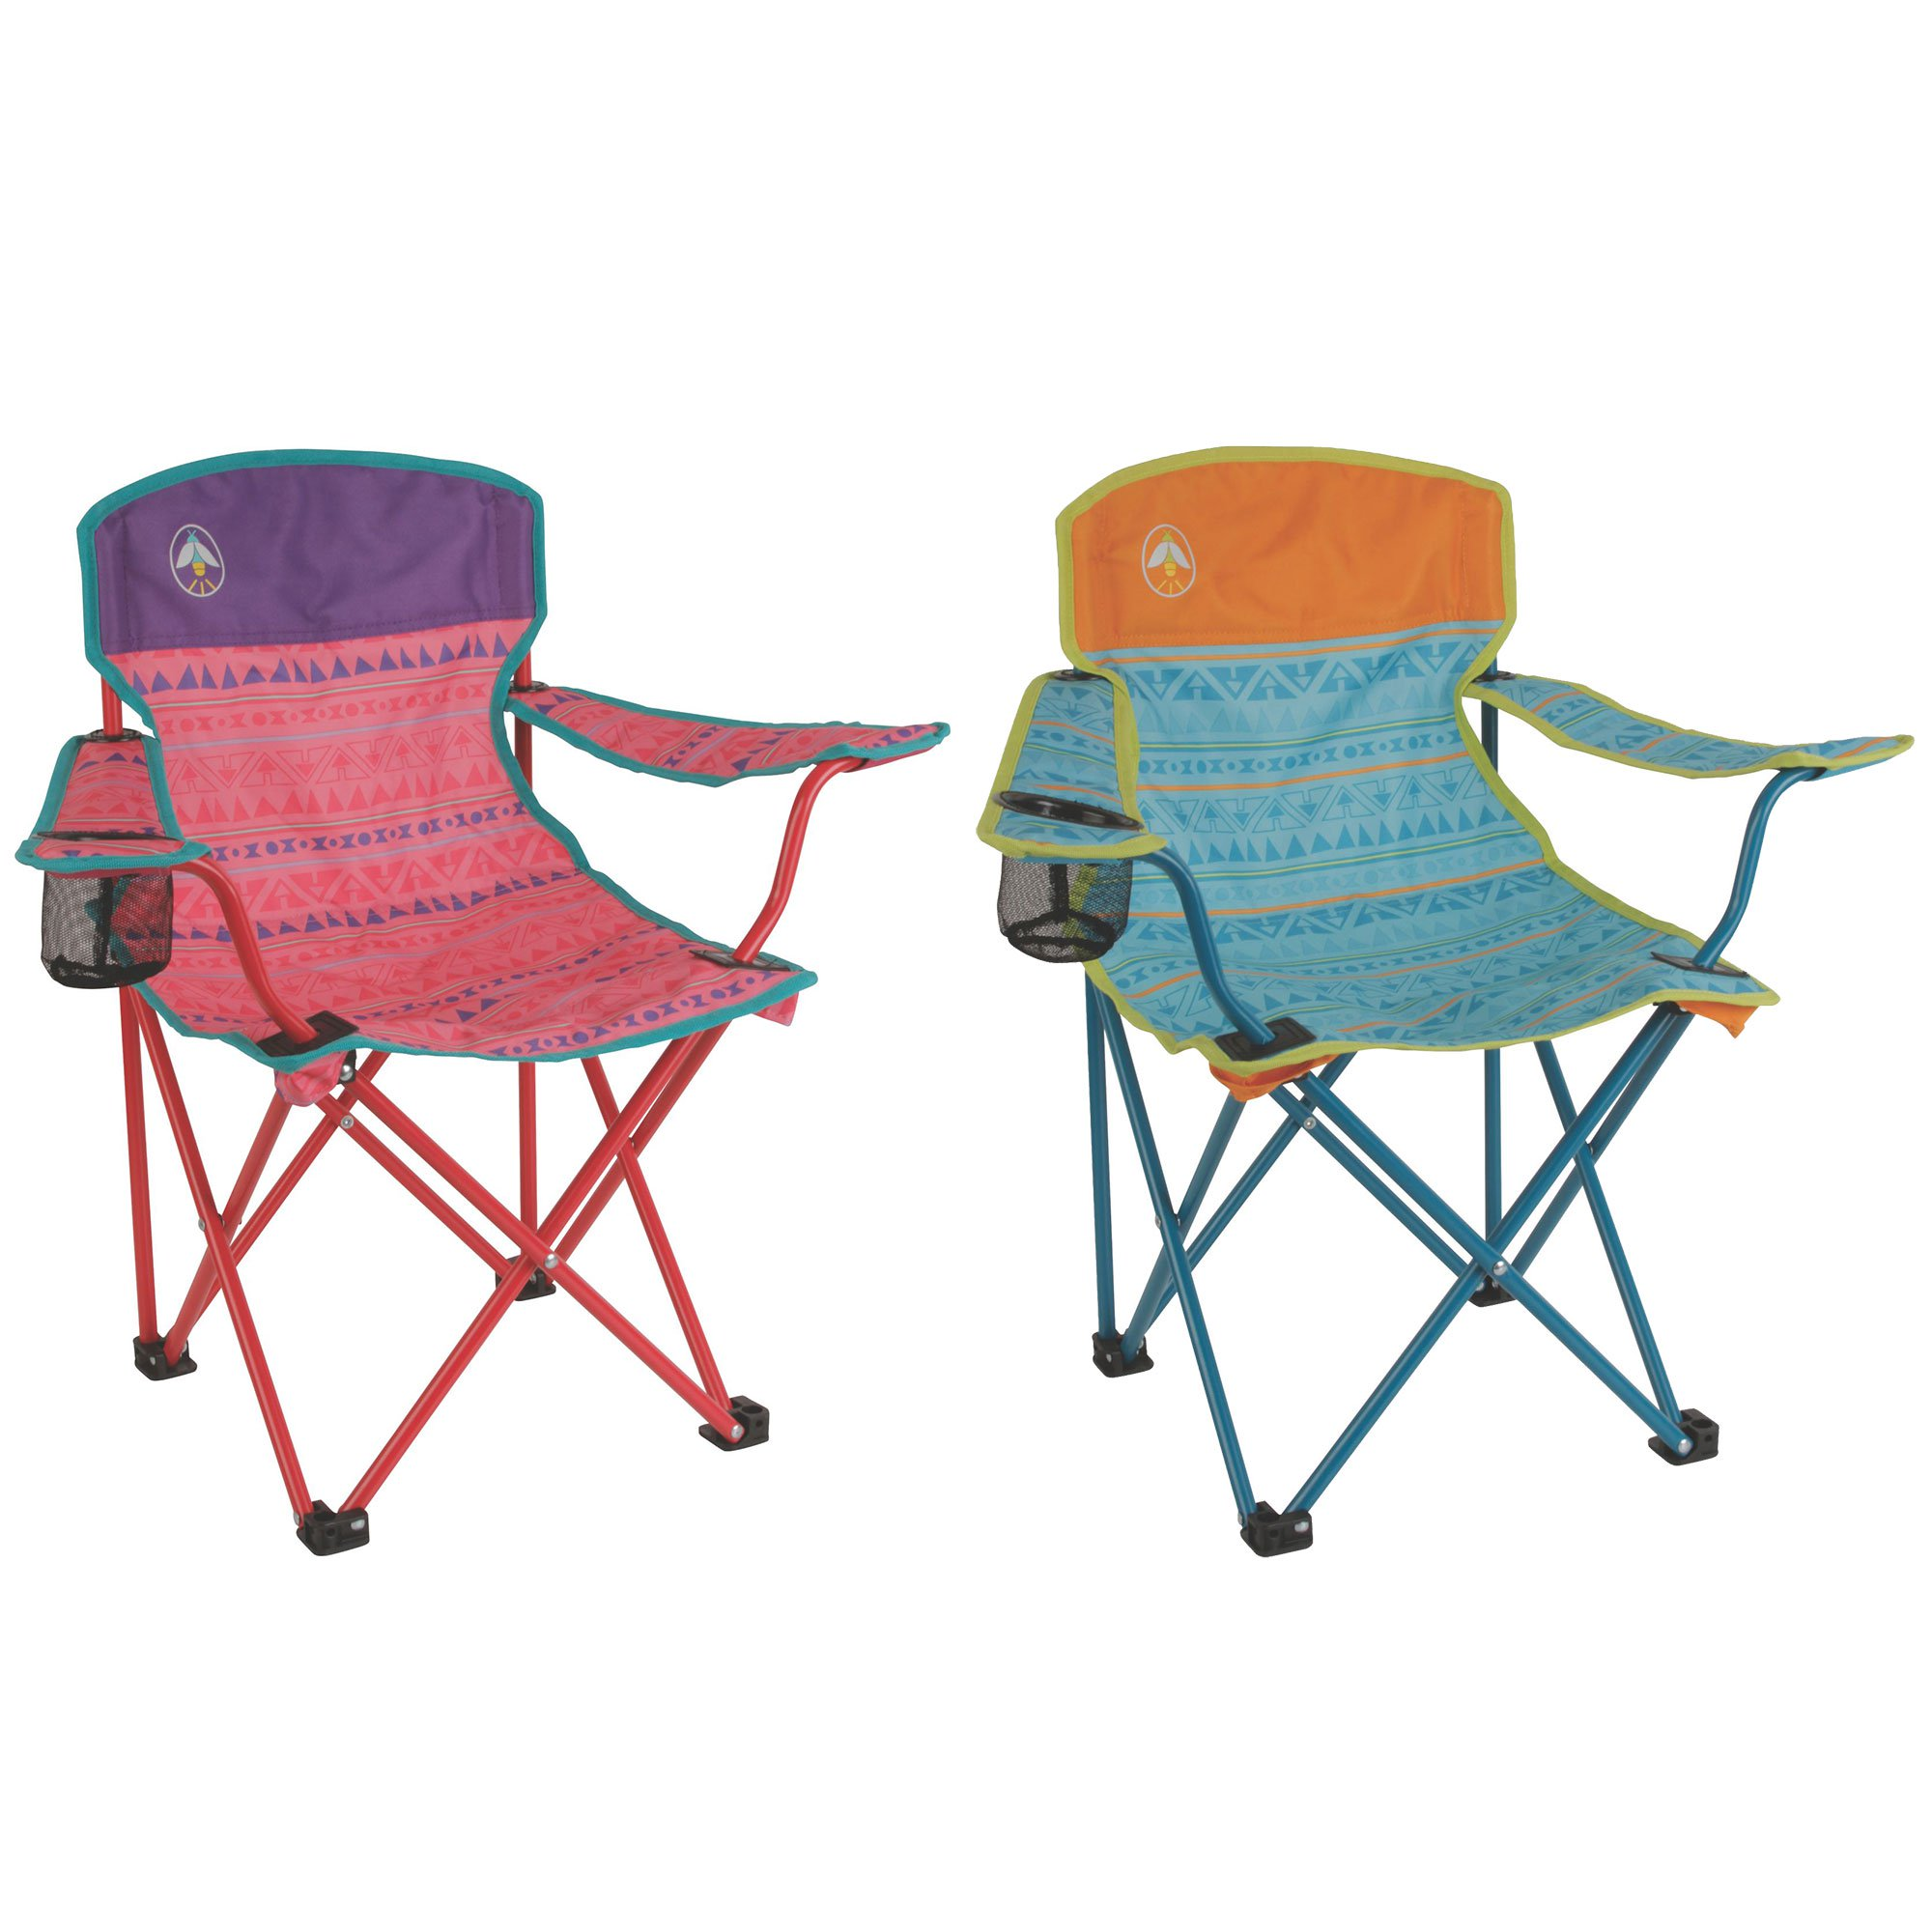 Coleman Kids Camping Glow In The Dark Quad Outdoor Chair, Tribal Teal